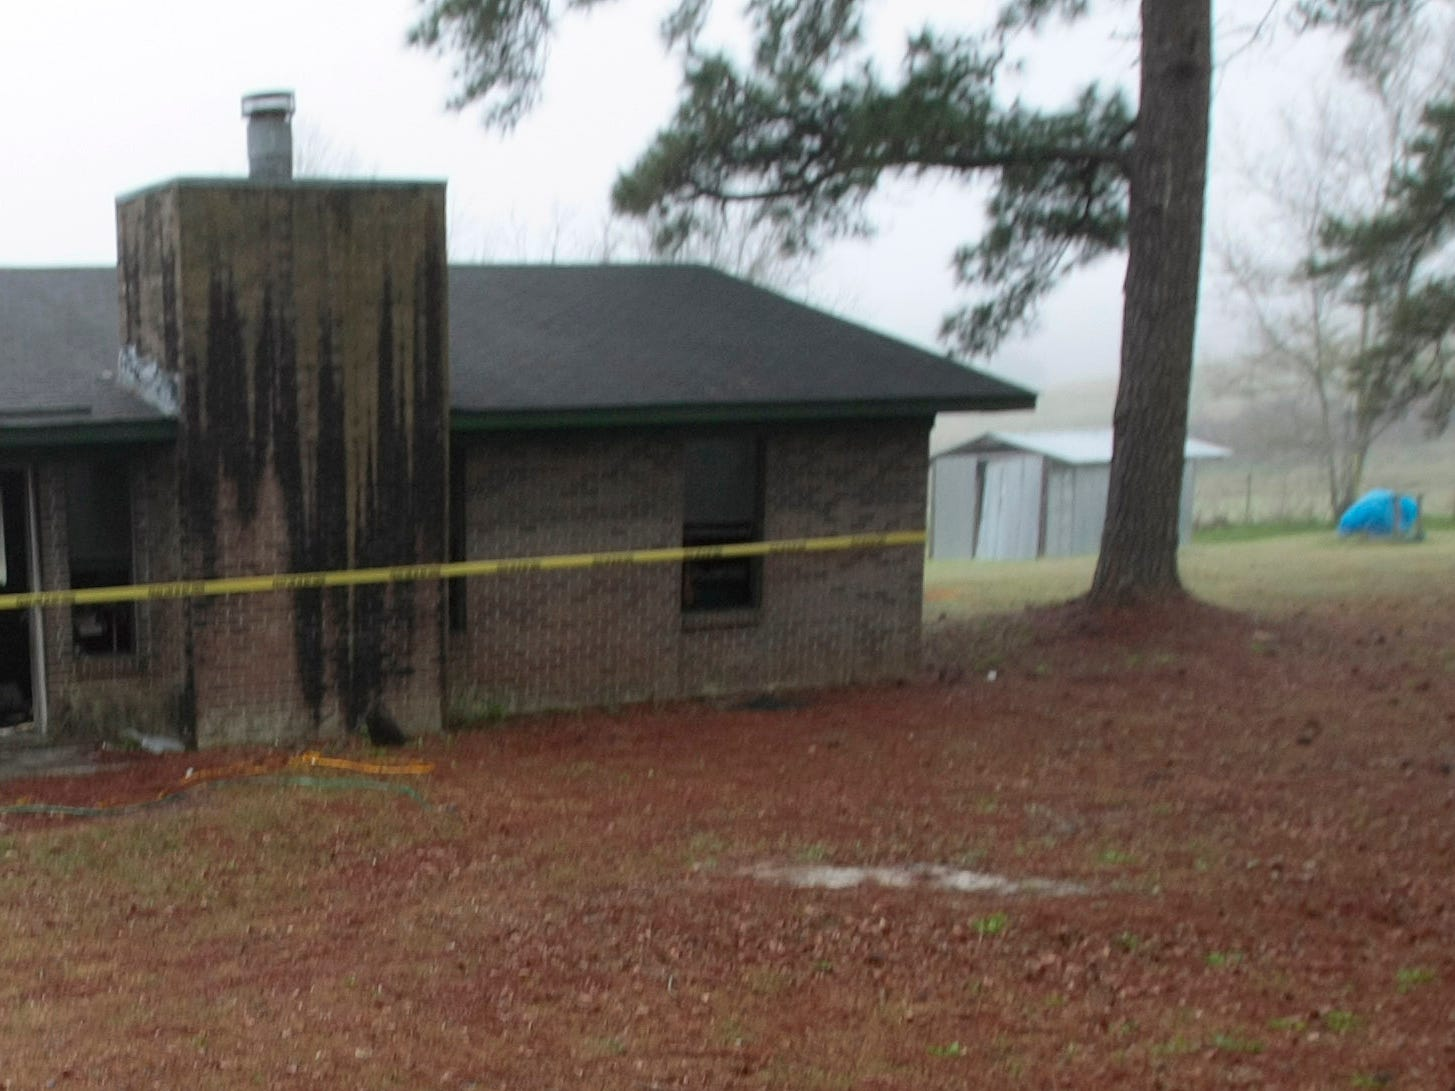 Private residences and Reliable Building Products   Geneva County, Alabama   March 10, 2009   11 dead   6 wounded